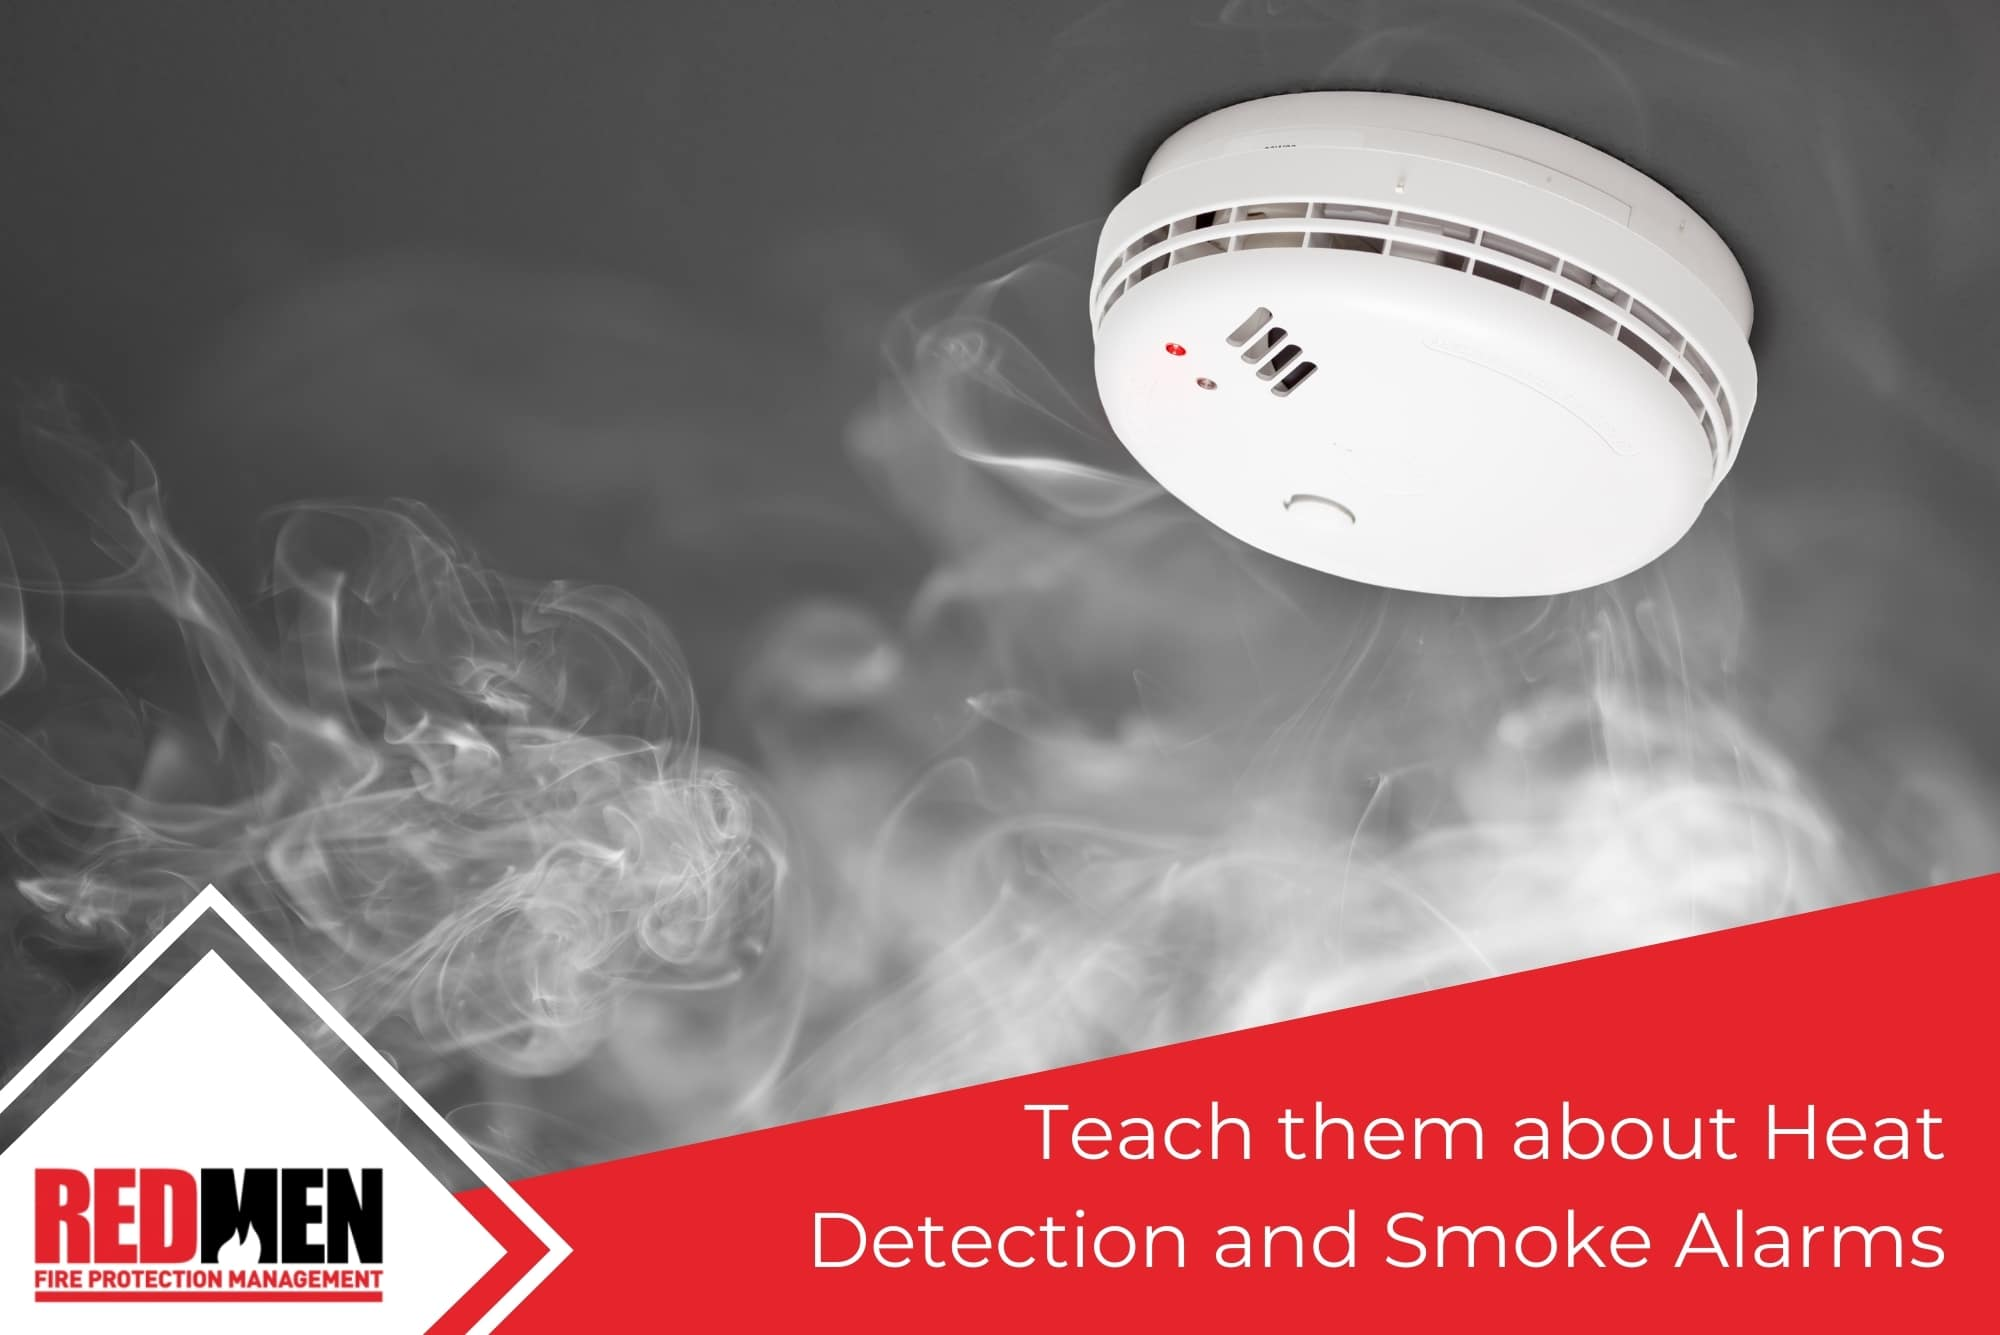 Teach them about Heat Detection and Smoke Alarms